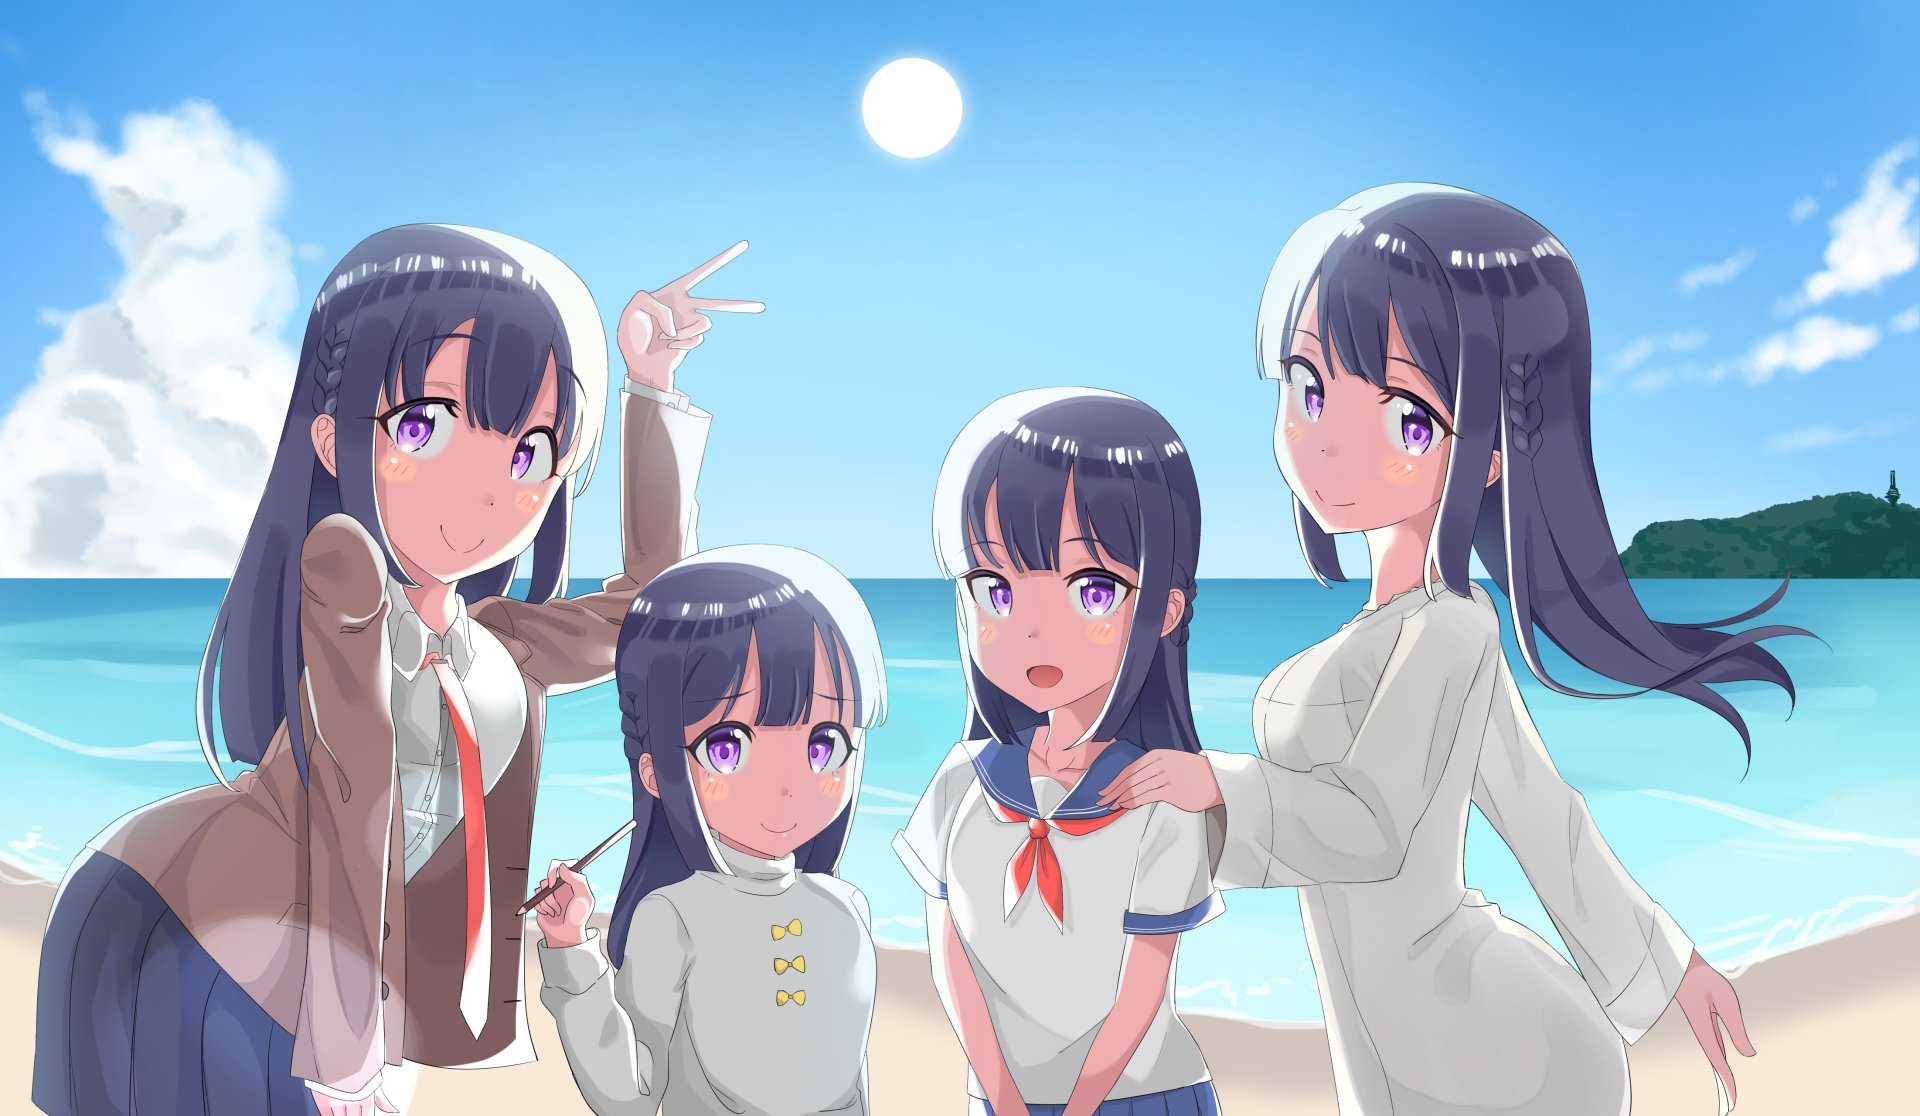 Anime Girls Beach Wallpaper HD 1920 x 1080 4k